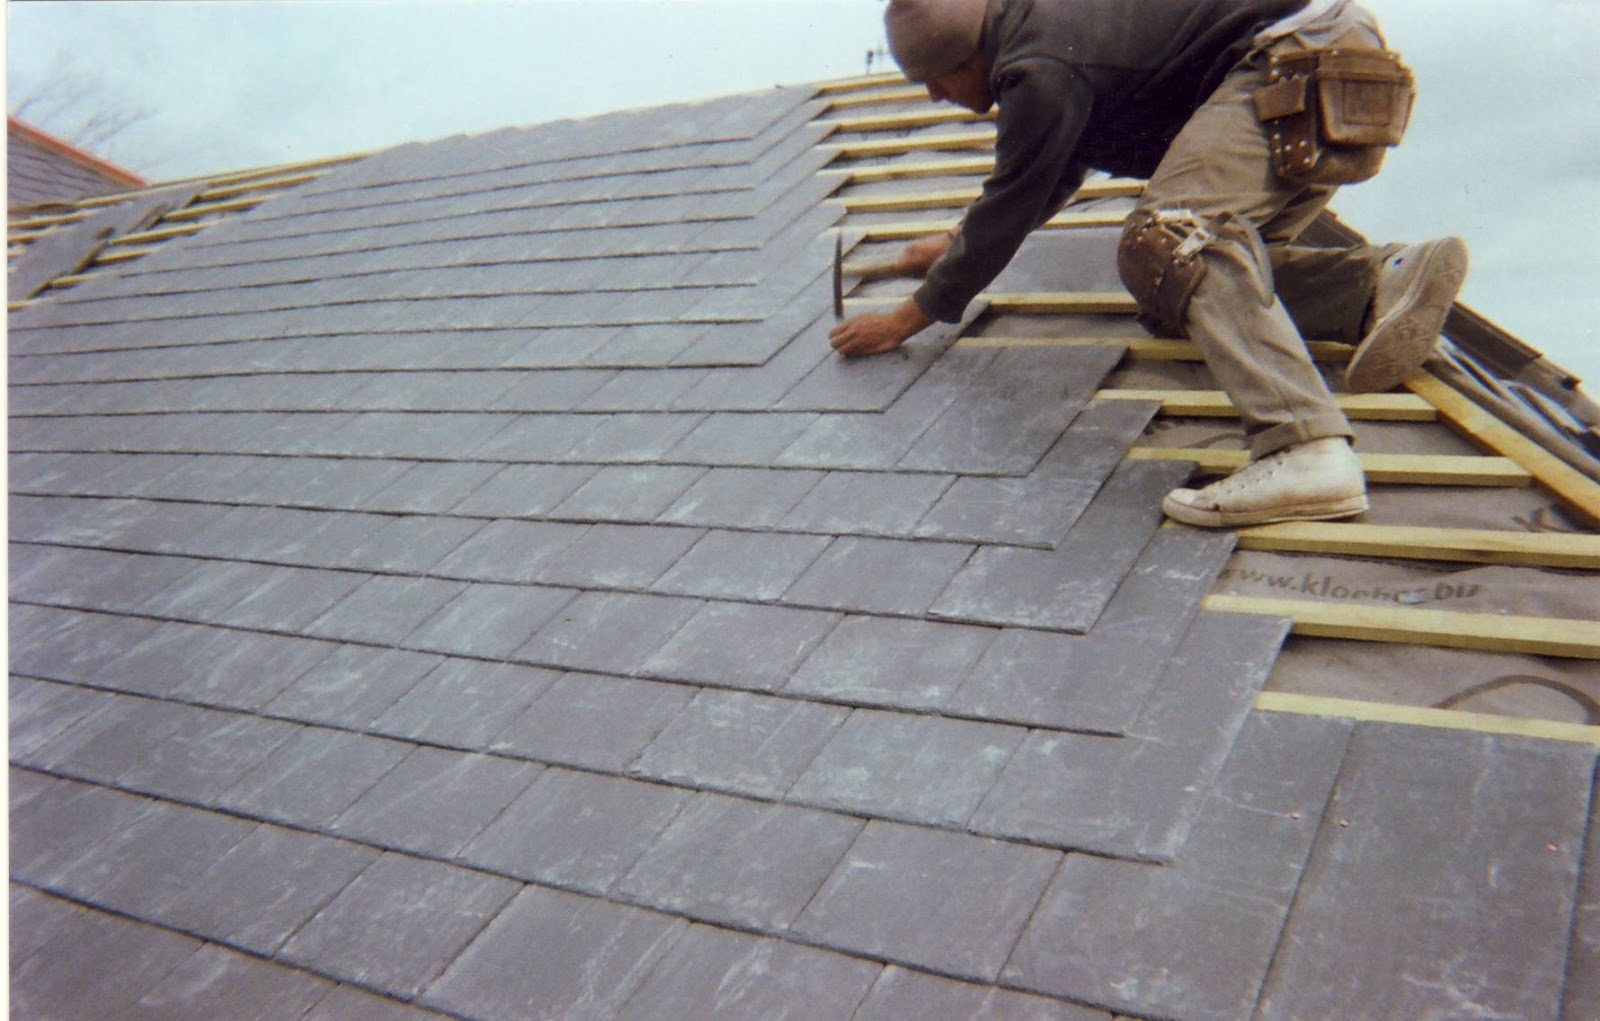 A roofing contractor working on a slate roof.